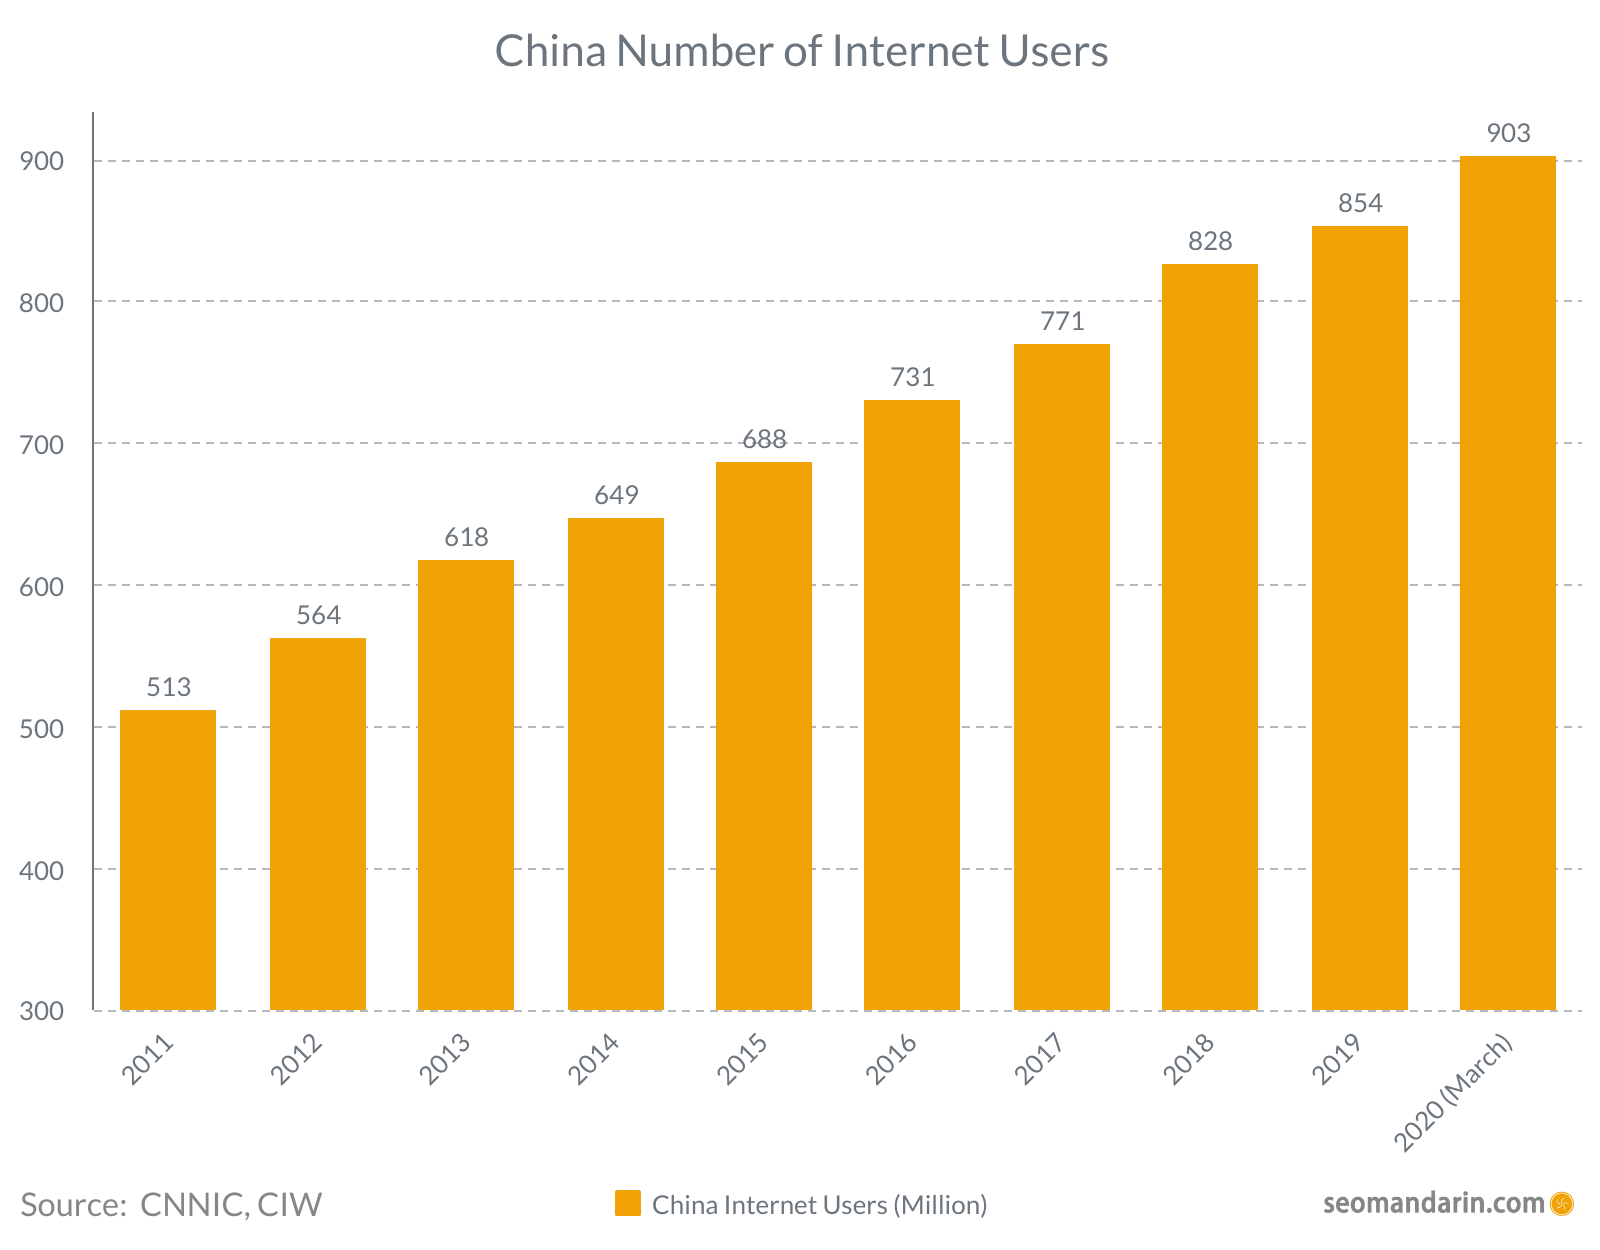 China number of internet users 2020